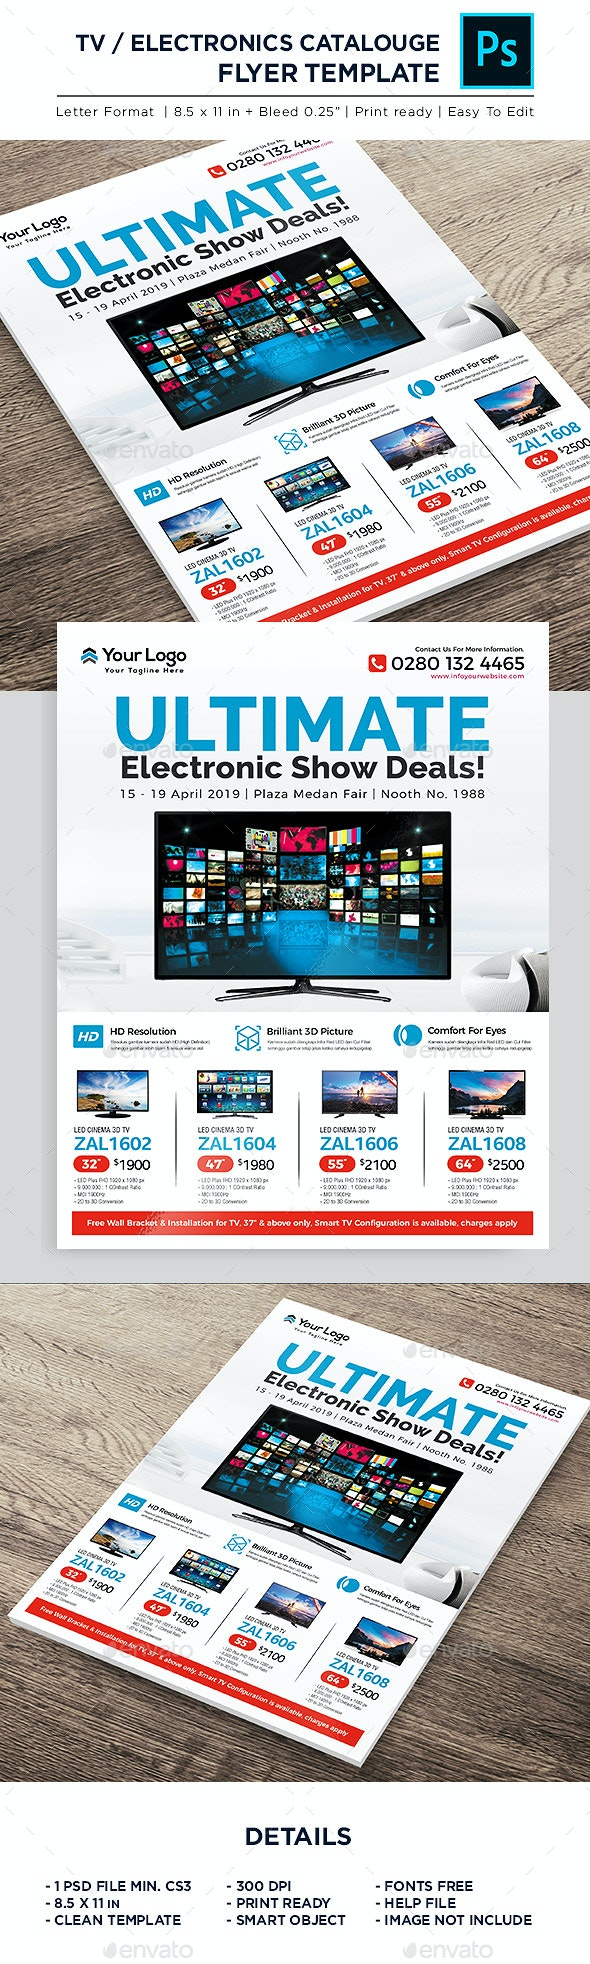 TV Sale/ Electronic Product Catalogue - Corporate Flyer - Commerce Flyers